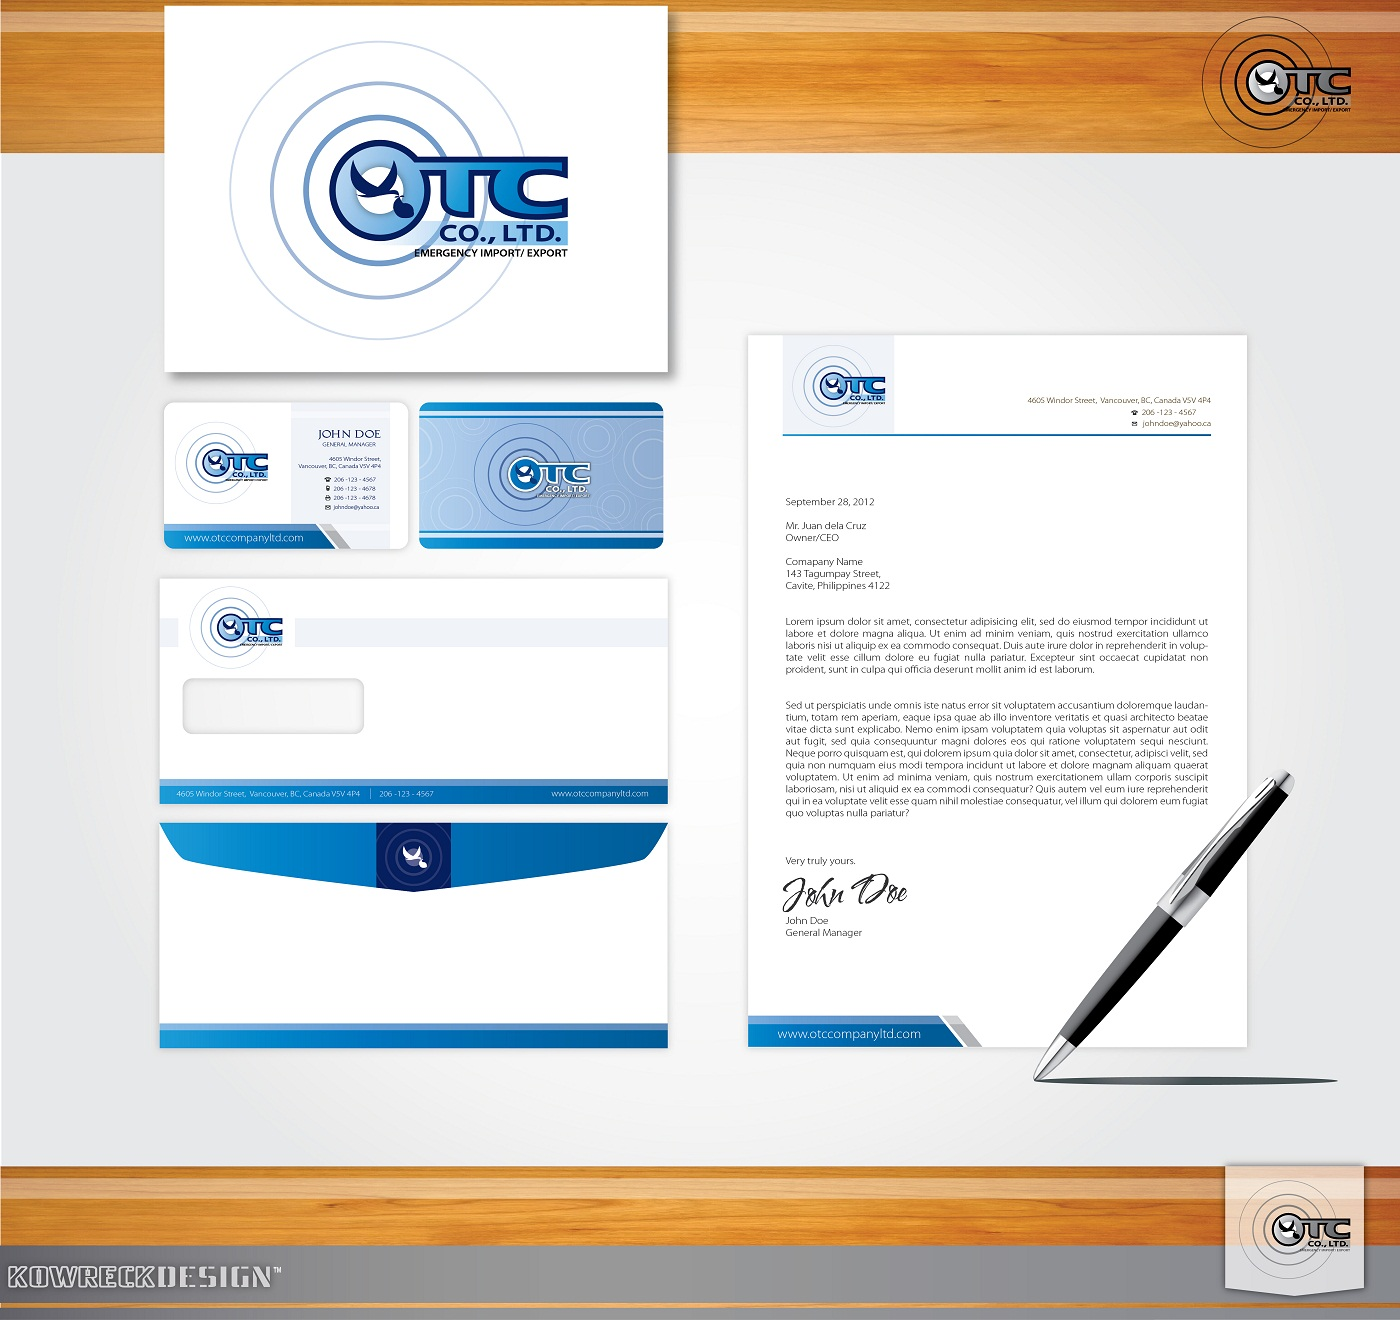 Logo Design by kowreck - Entry No. 44 in the Logo Design Contest Unique Logo Design Wanted for OTC Co.,Ltd..